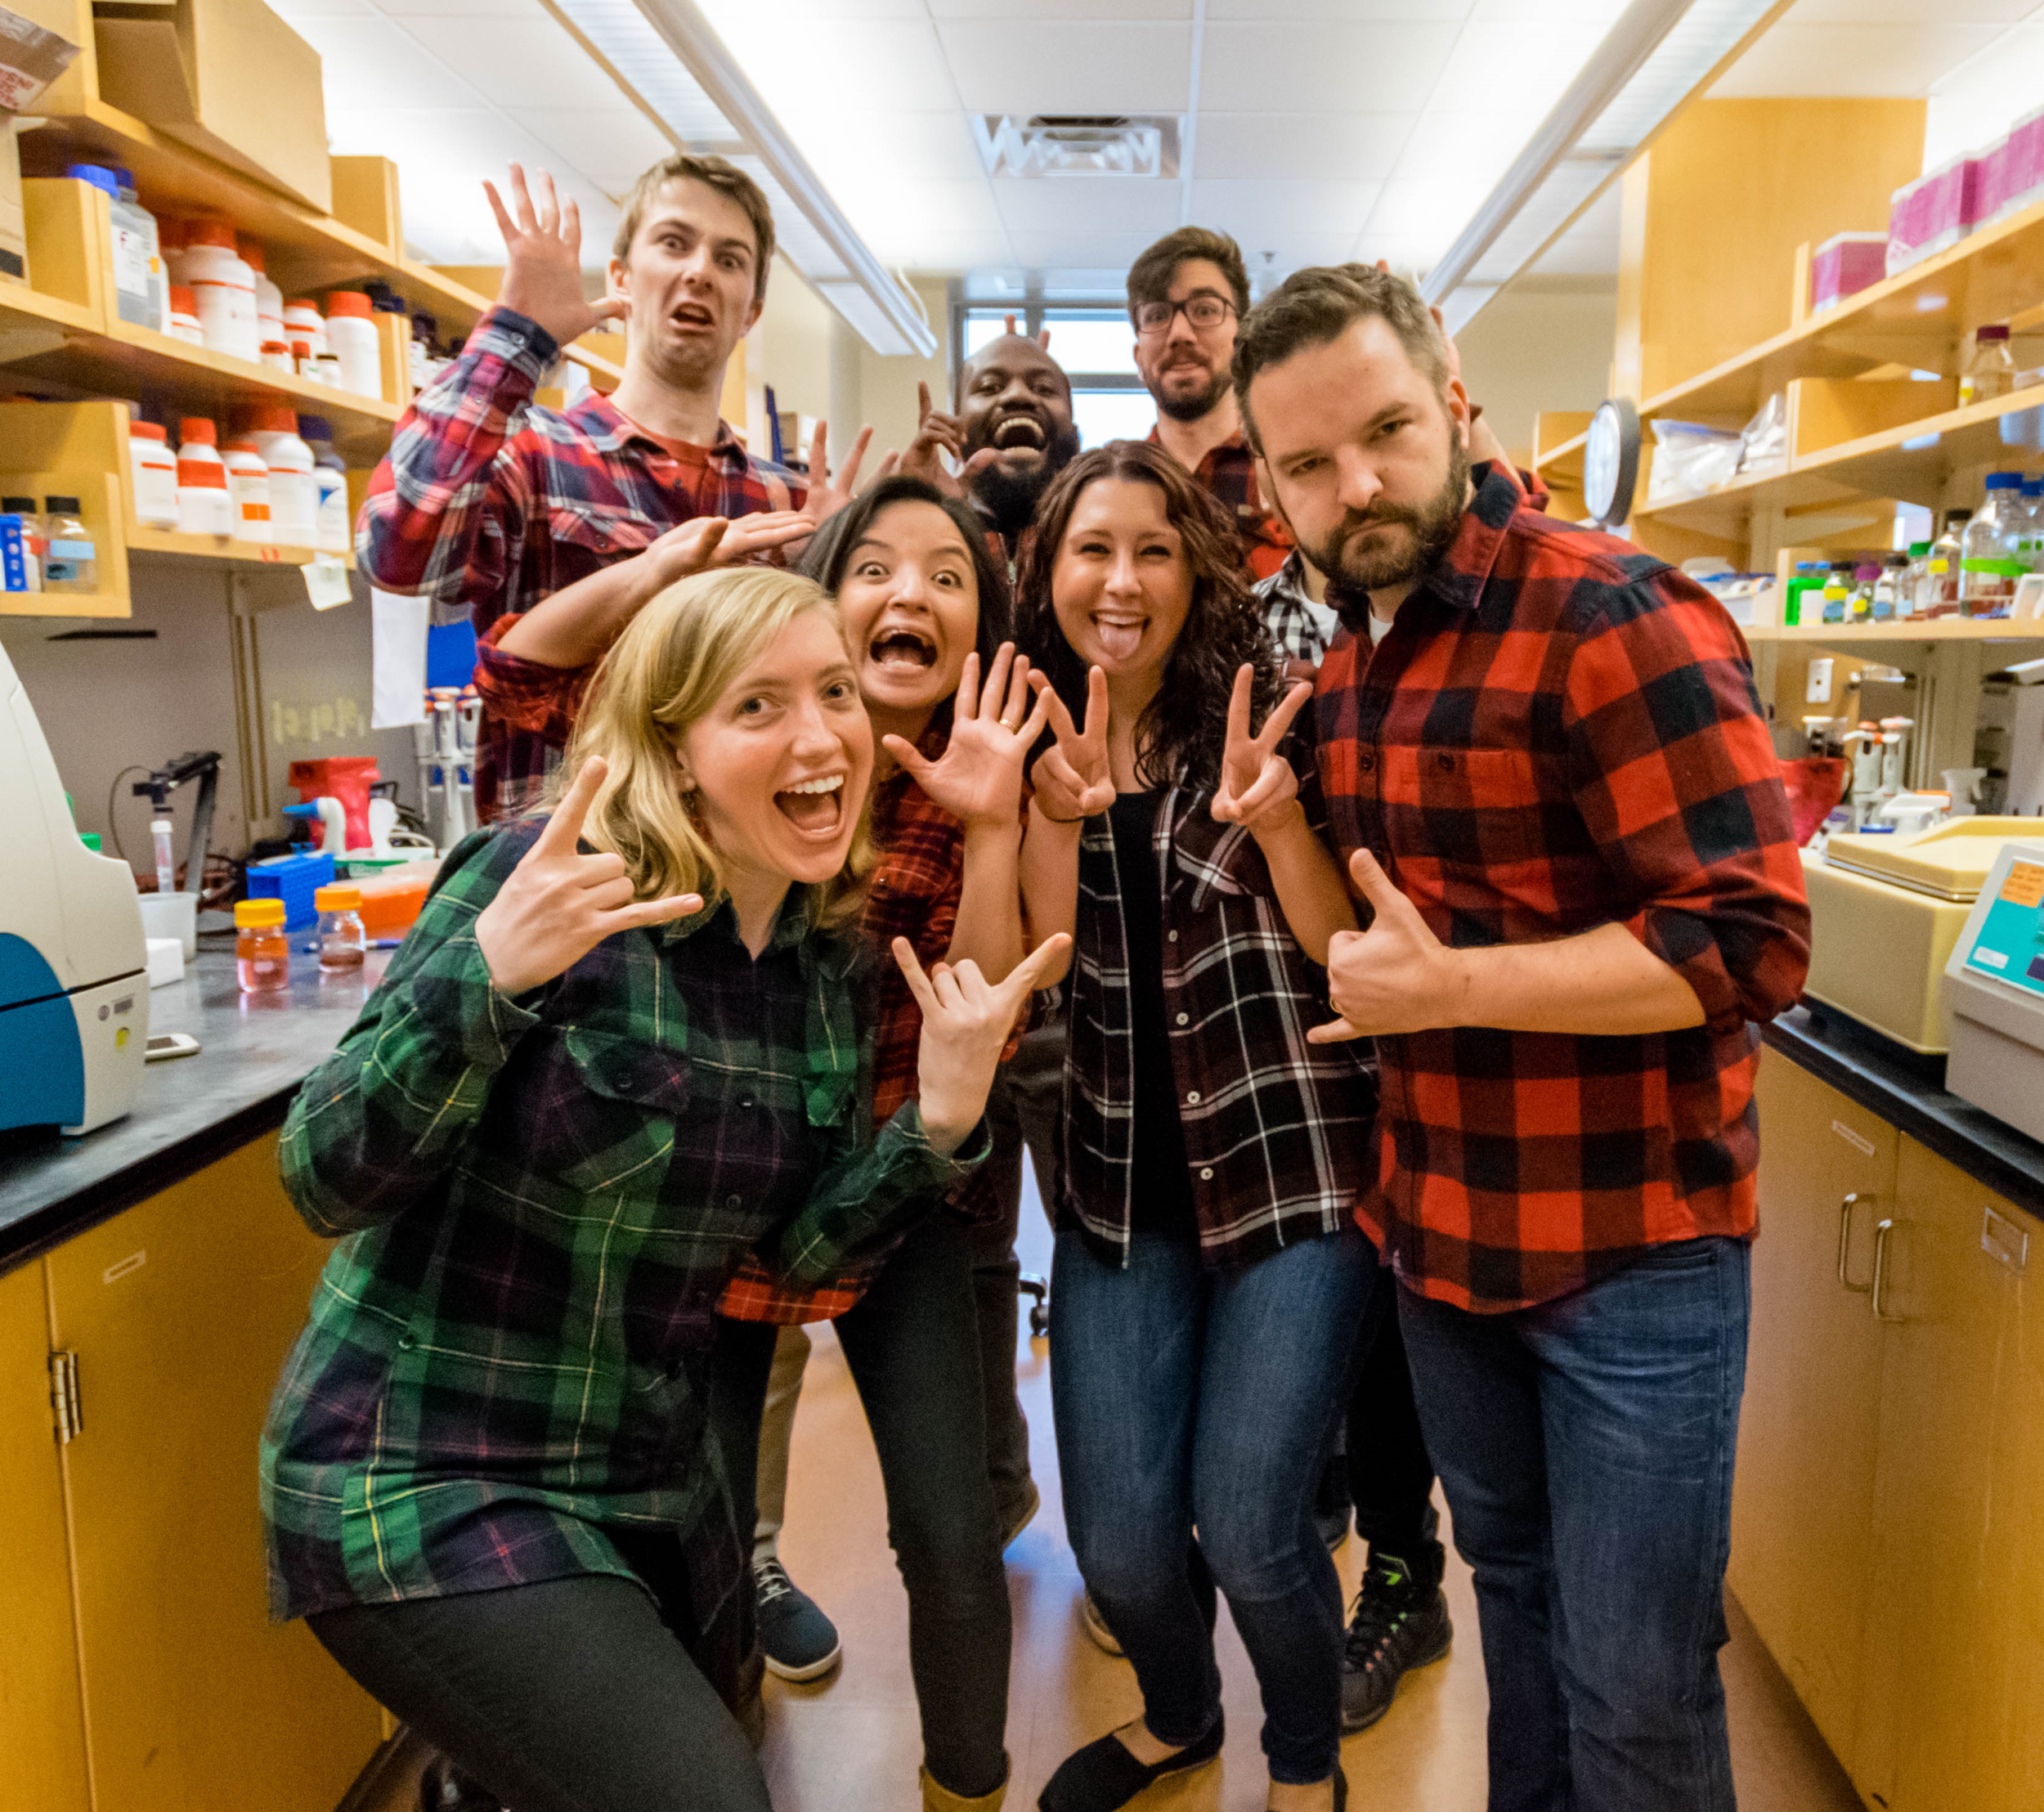 """The Delgoffe lab, rocking the """"lumberjack scientist"""" look."""